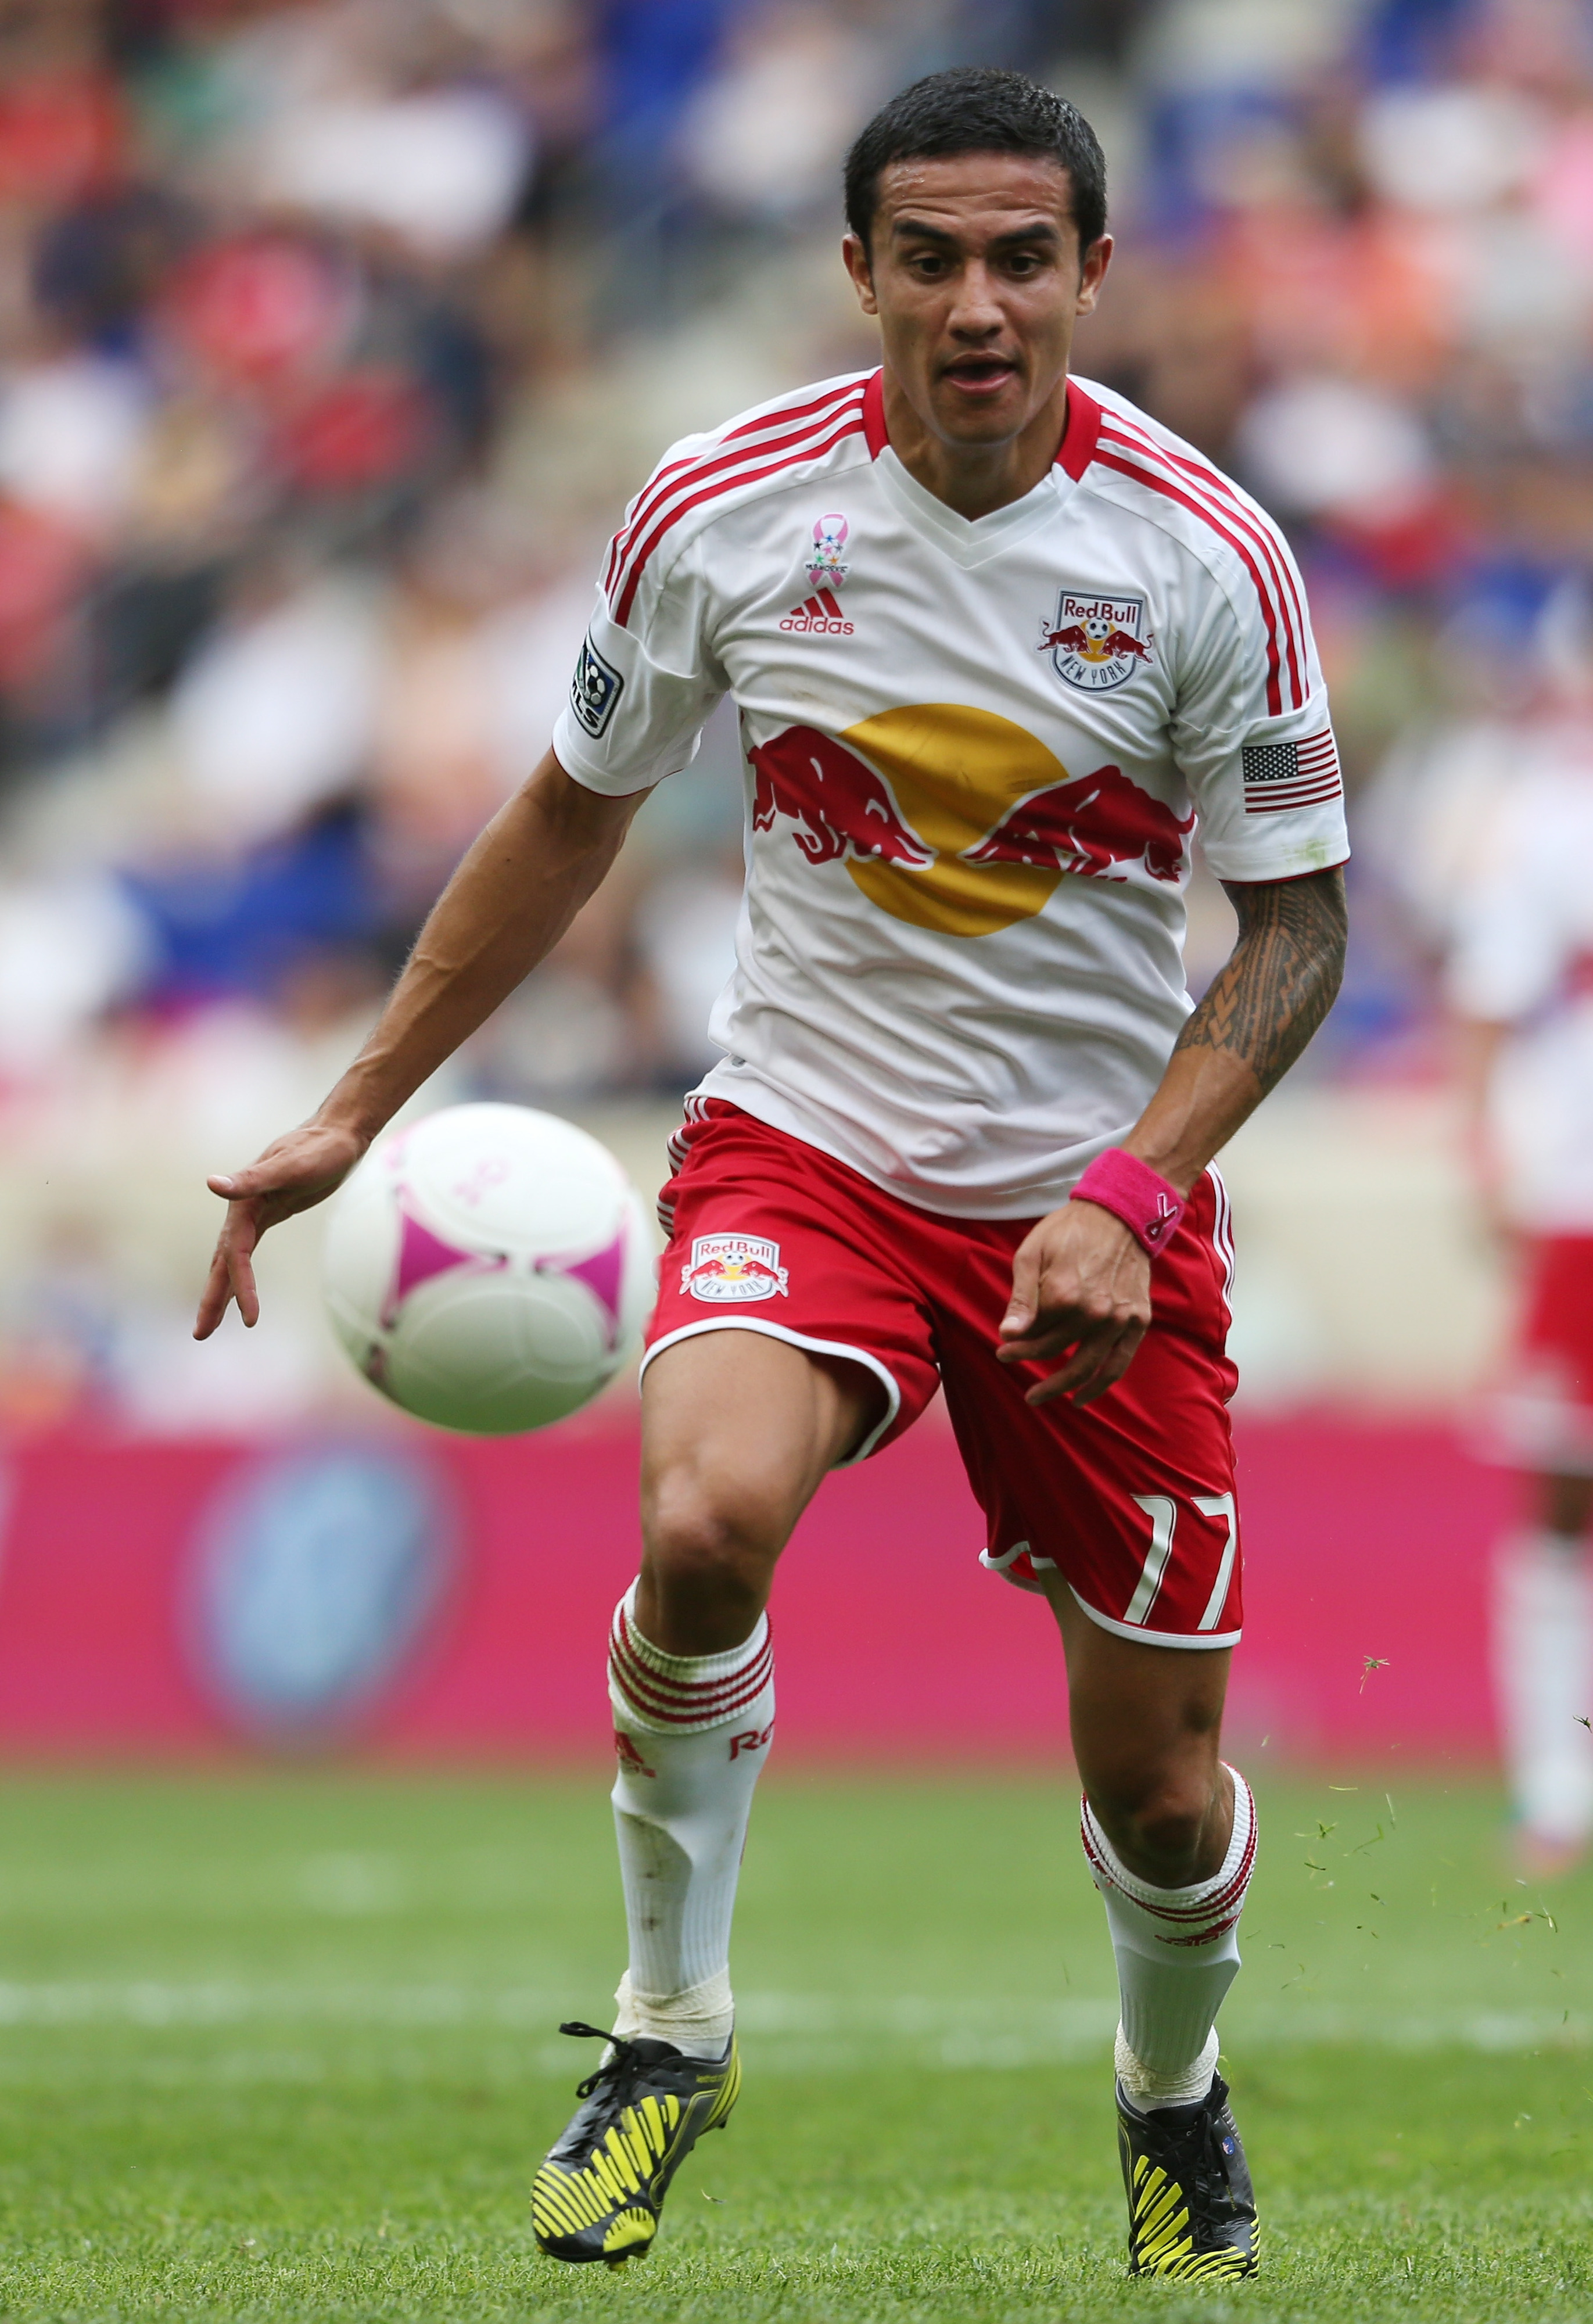 Tim Cahill is one of the many players who came to the Red Bulls during the 2012 season.